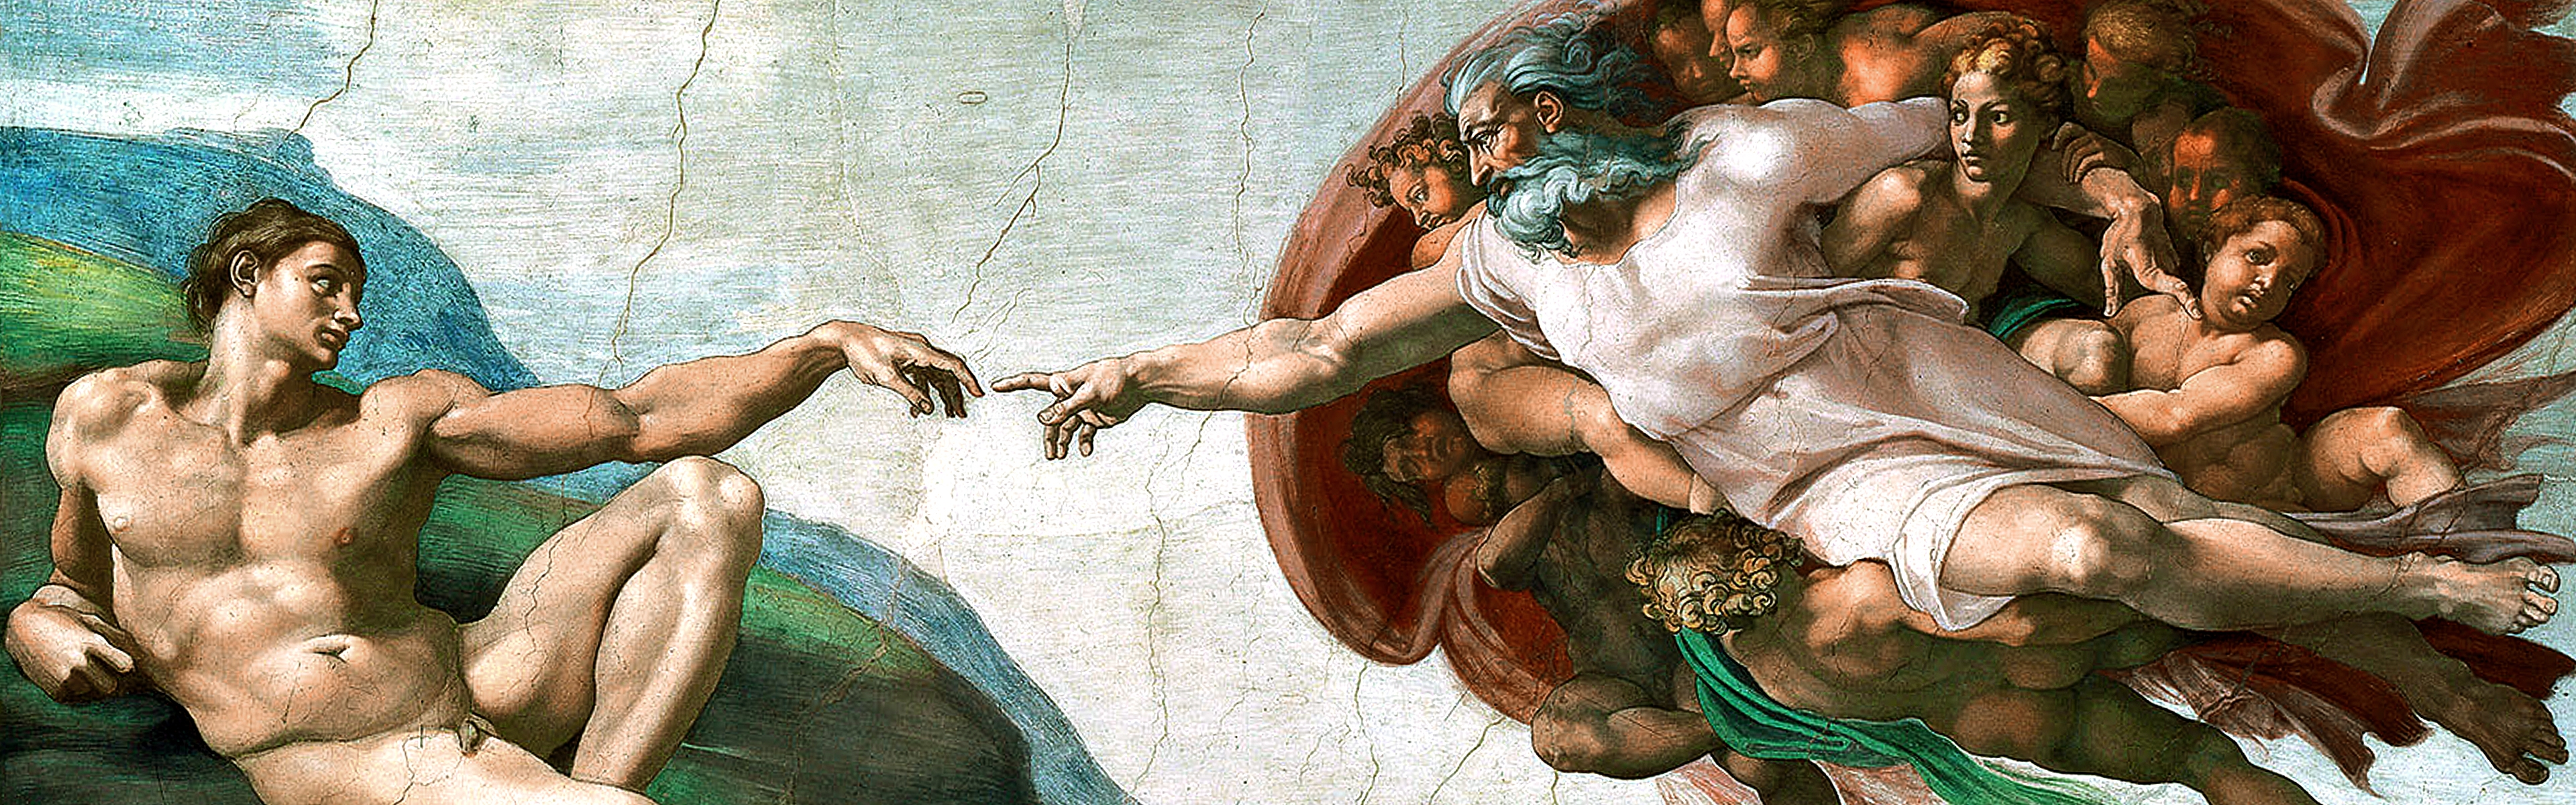 paintings michelangelo the creation of adam sistine chapel_www.paperhi.com_16